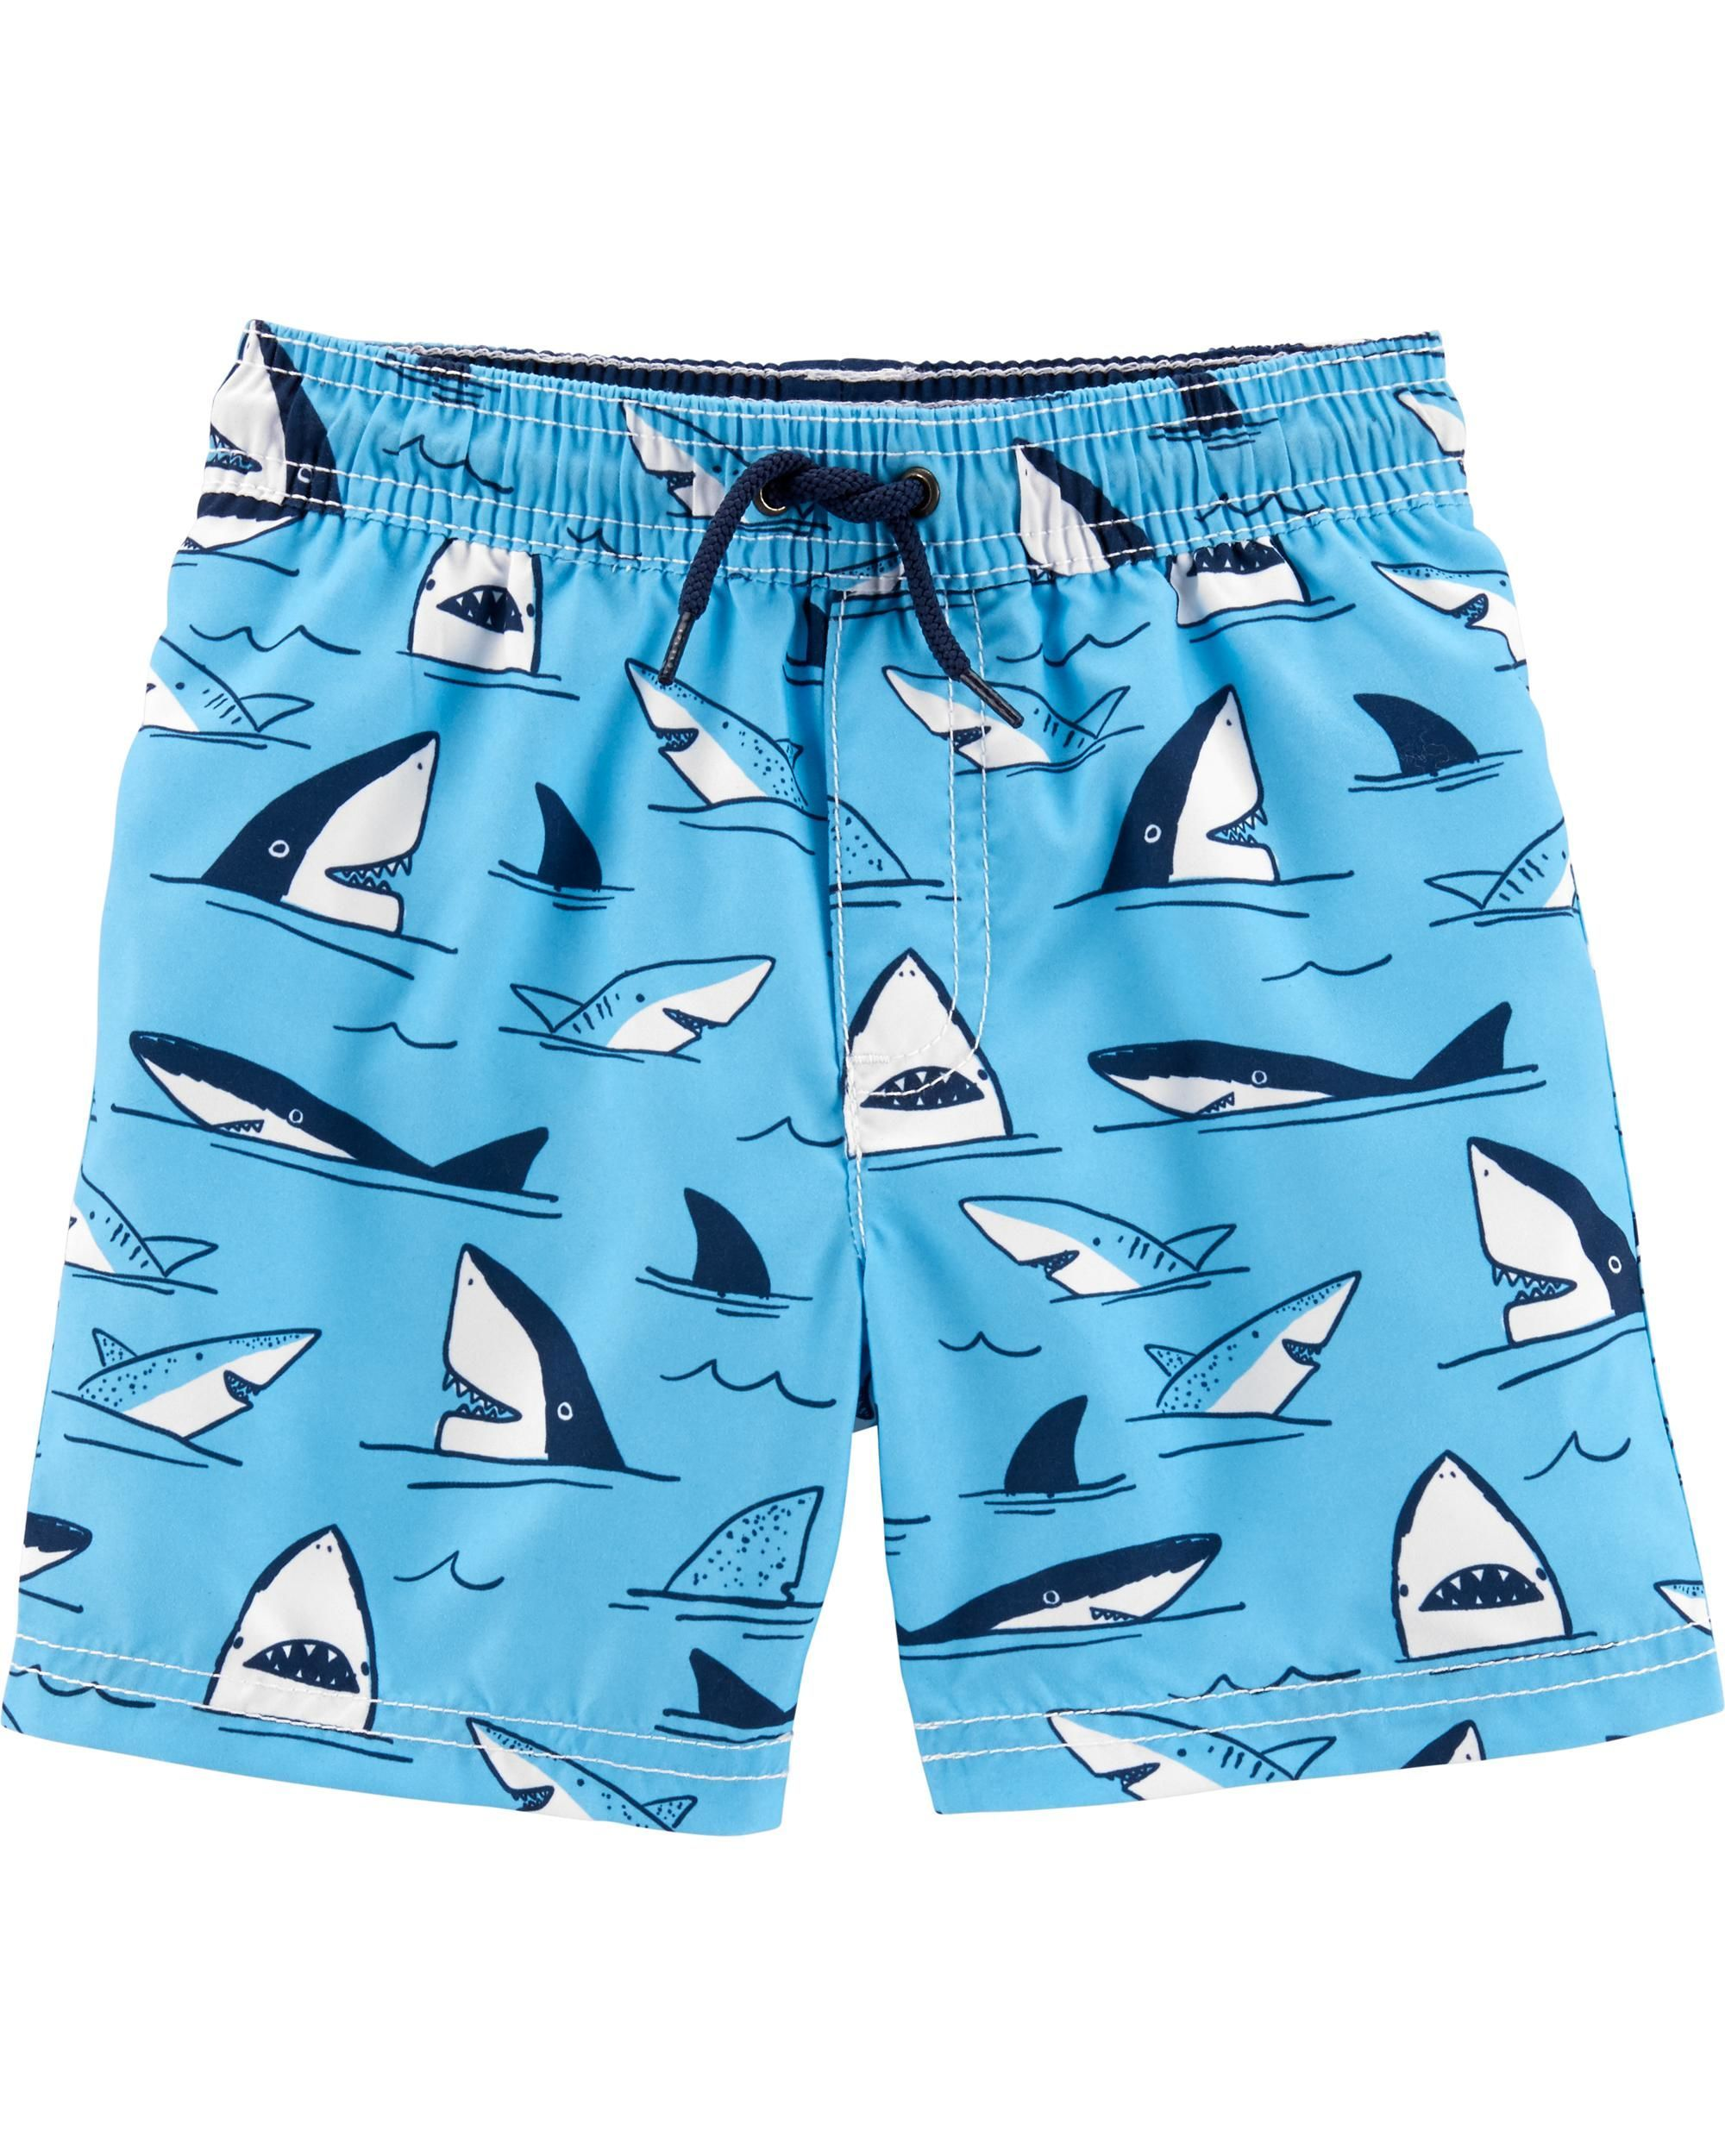 Live Love Laugh Teen Swim Trunks Quick Dry with Side Pockets